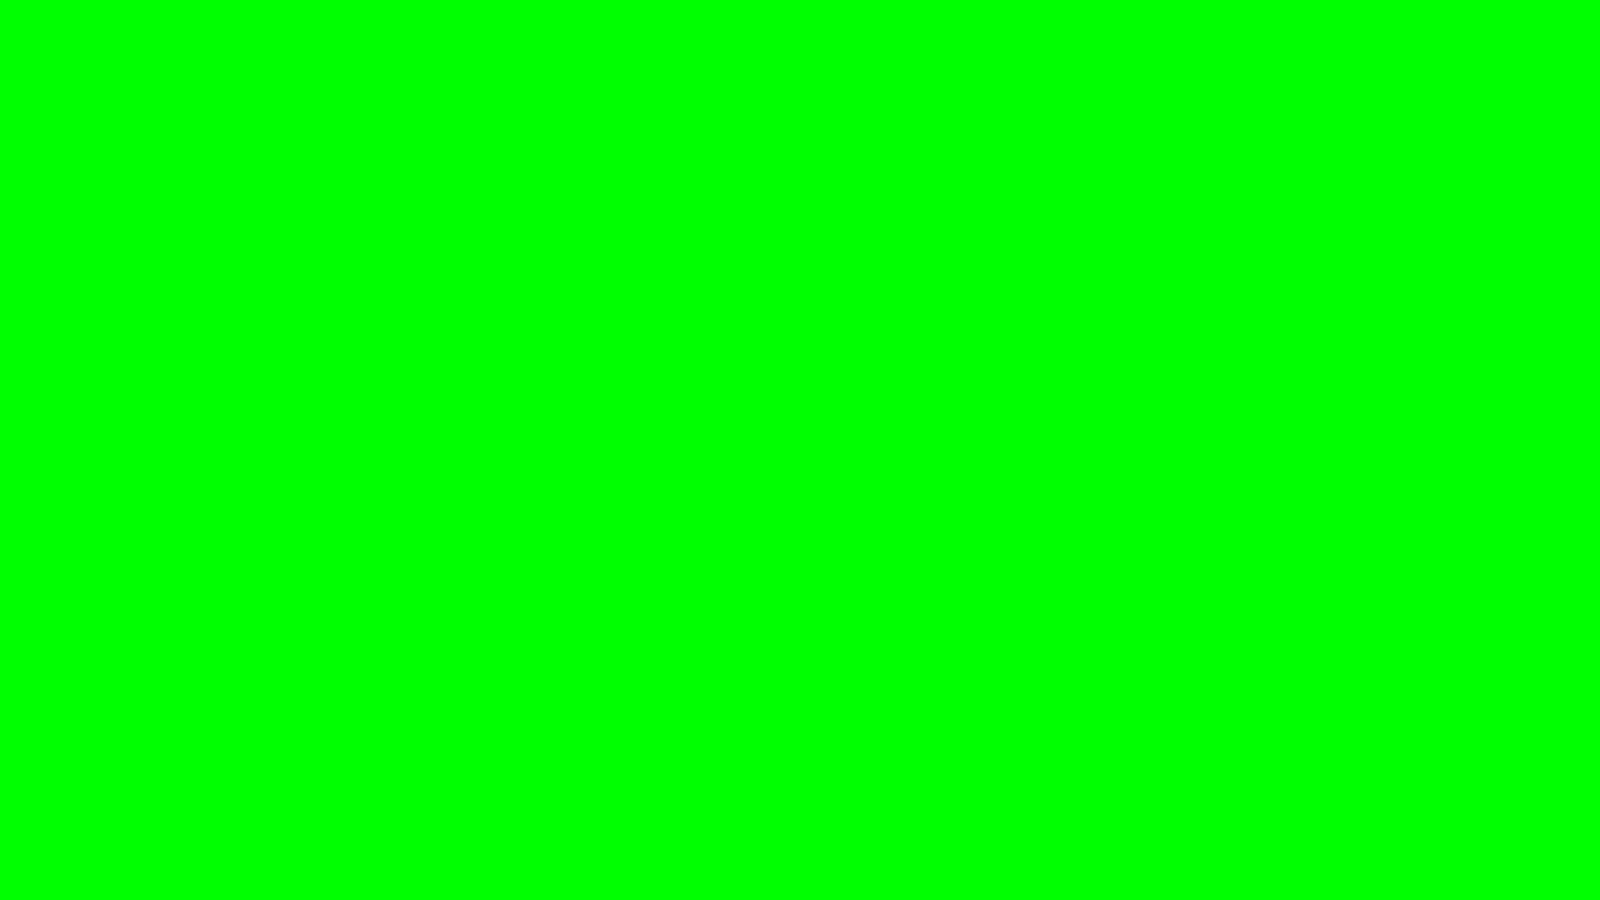 1600x900 Lime Web Green Solid Color Background